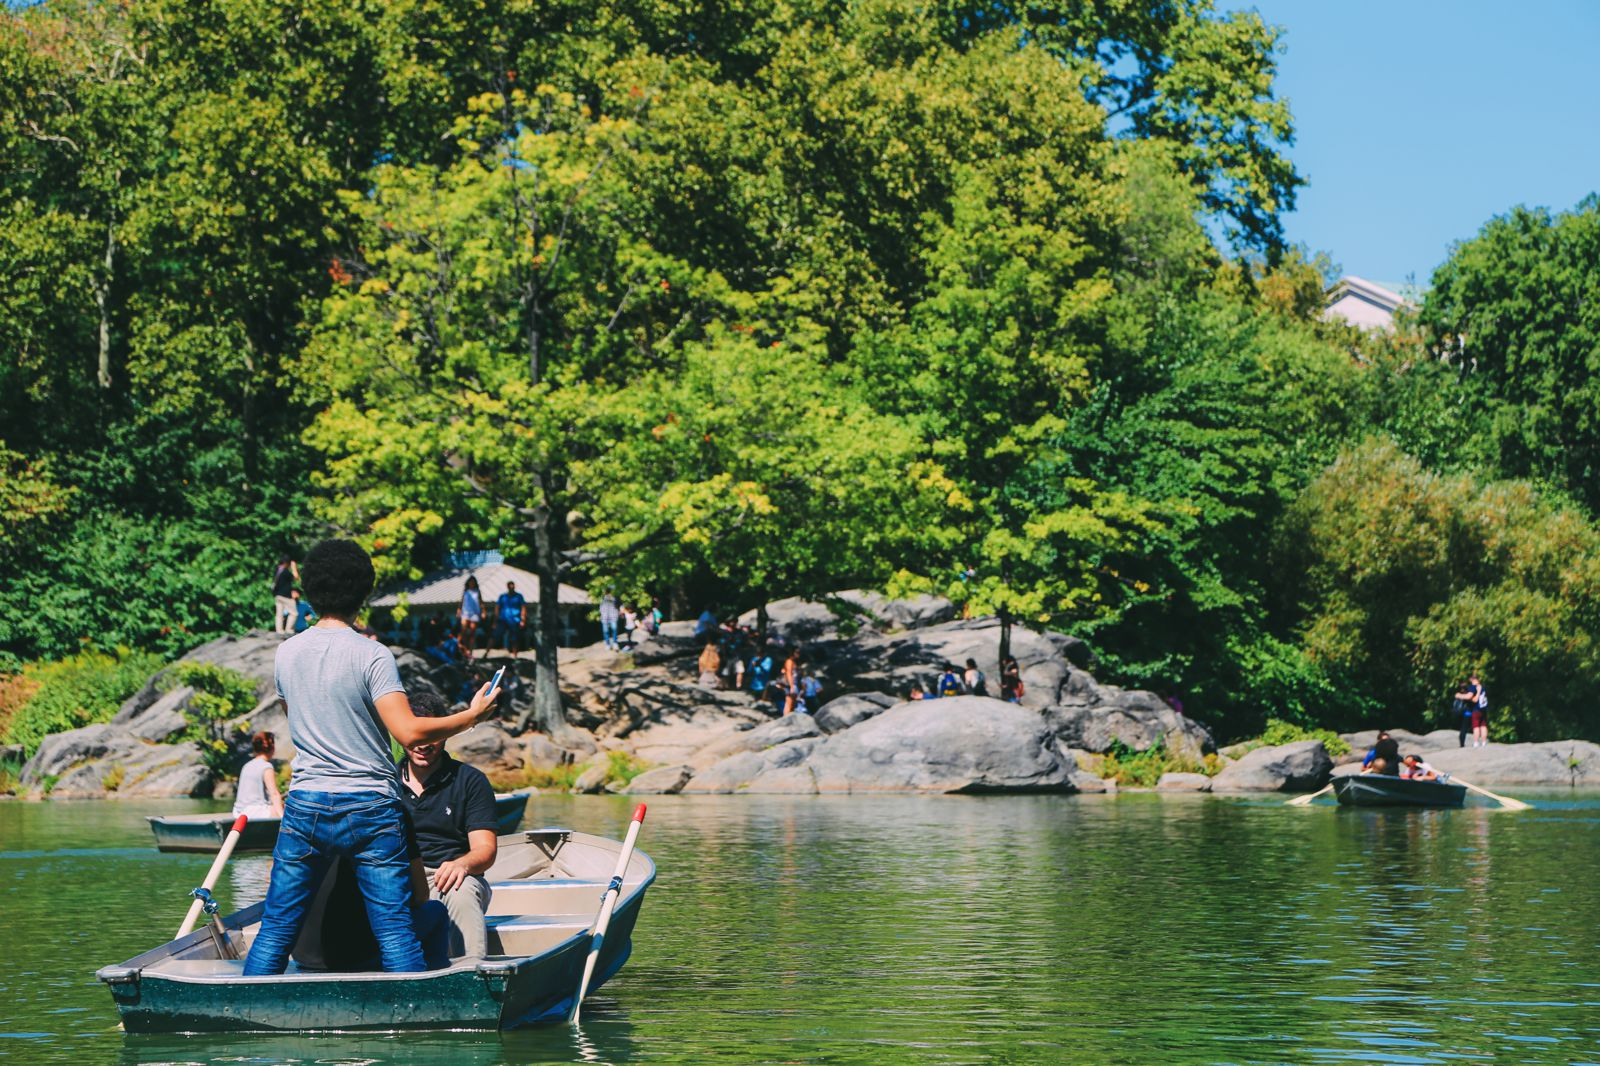 Boating at the Loeb Boathouse in Central Park, New York City (21)